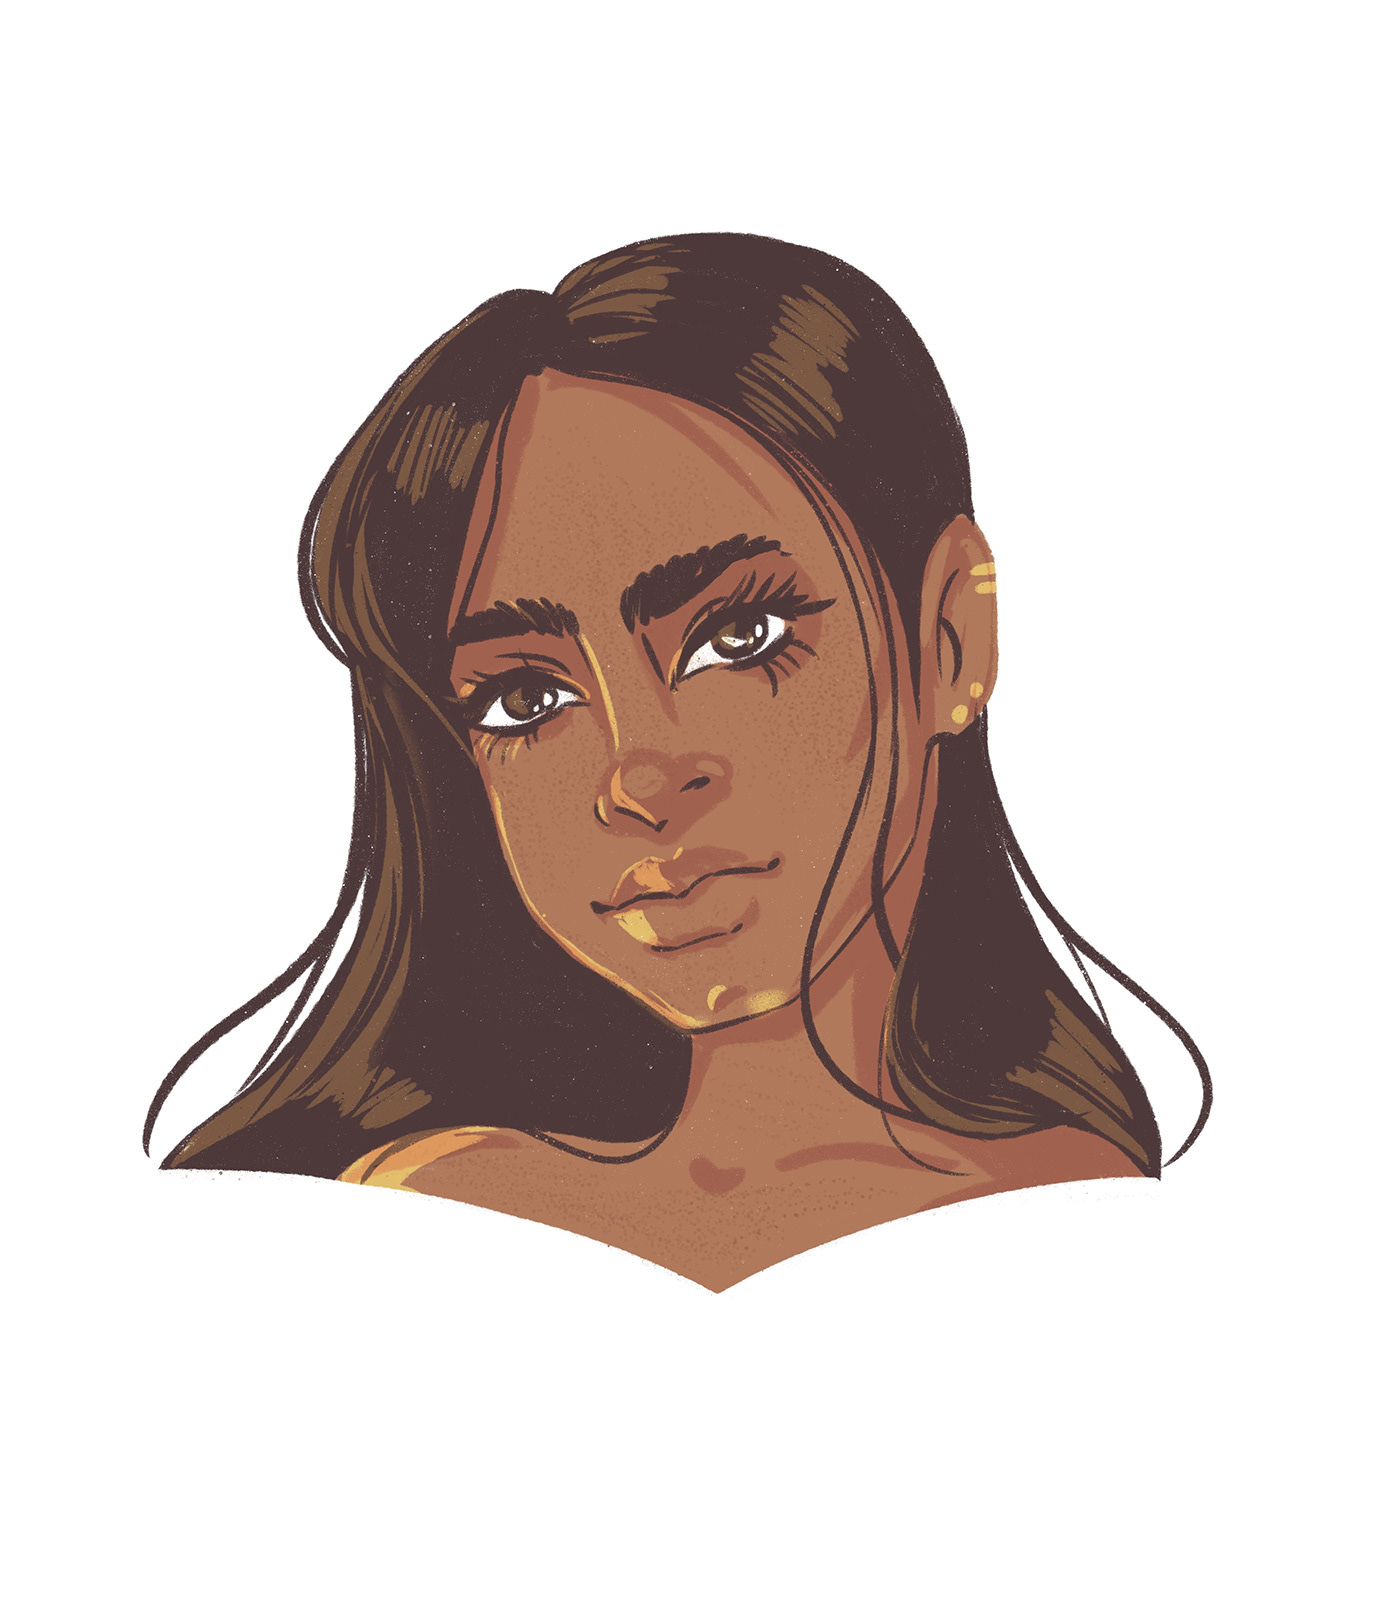 Character emotions face ILLUSTRATION  limited color people sketch woman